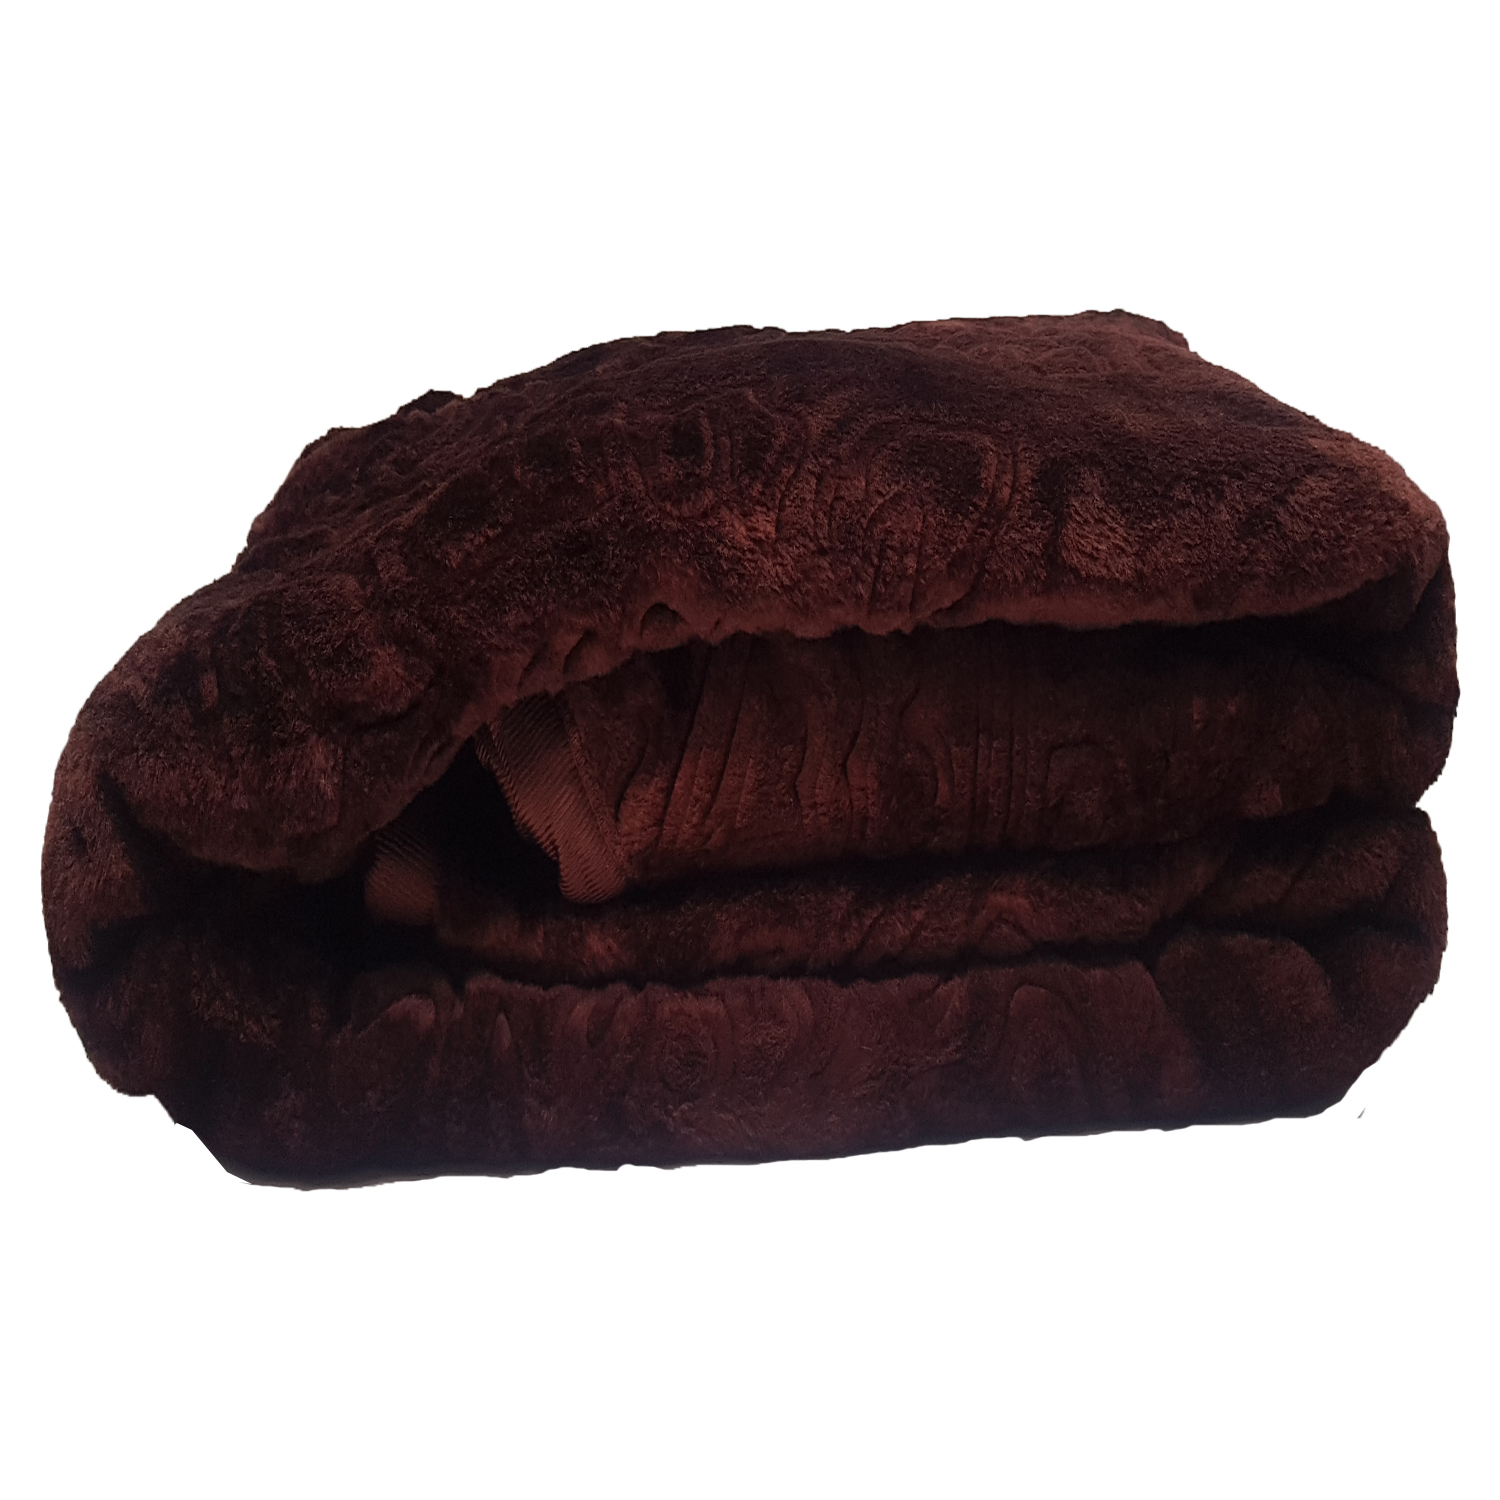 Soft Mink Blanket #41807485032